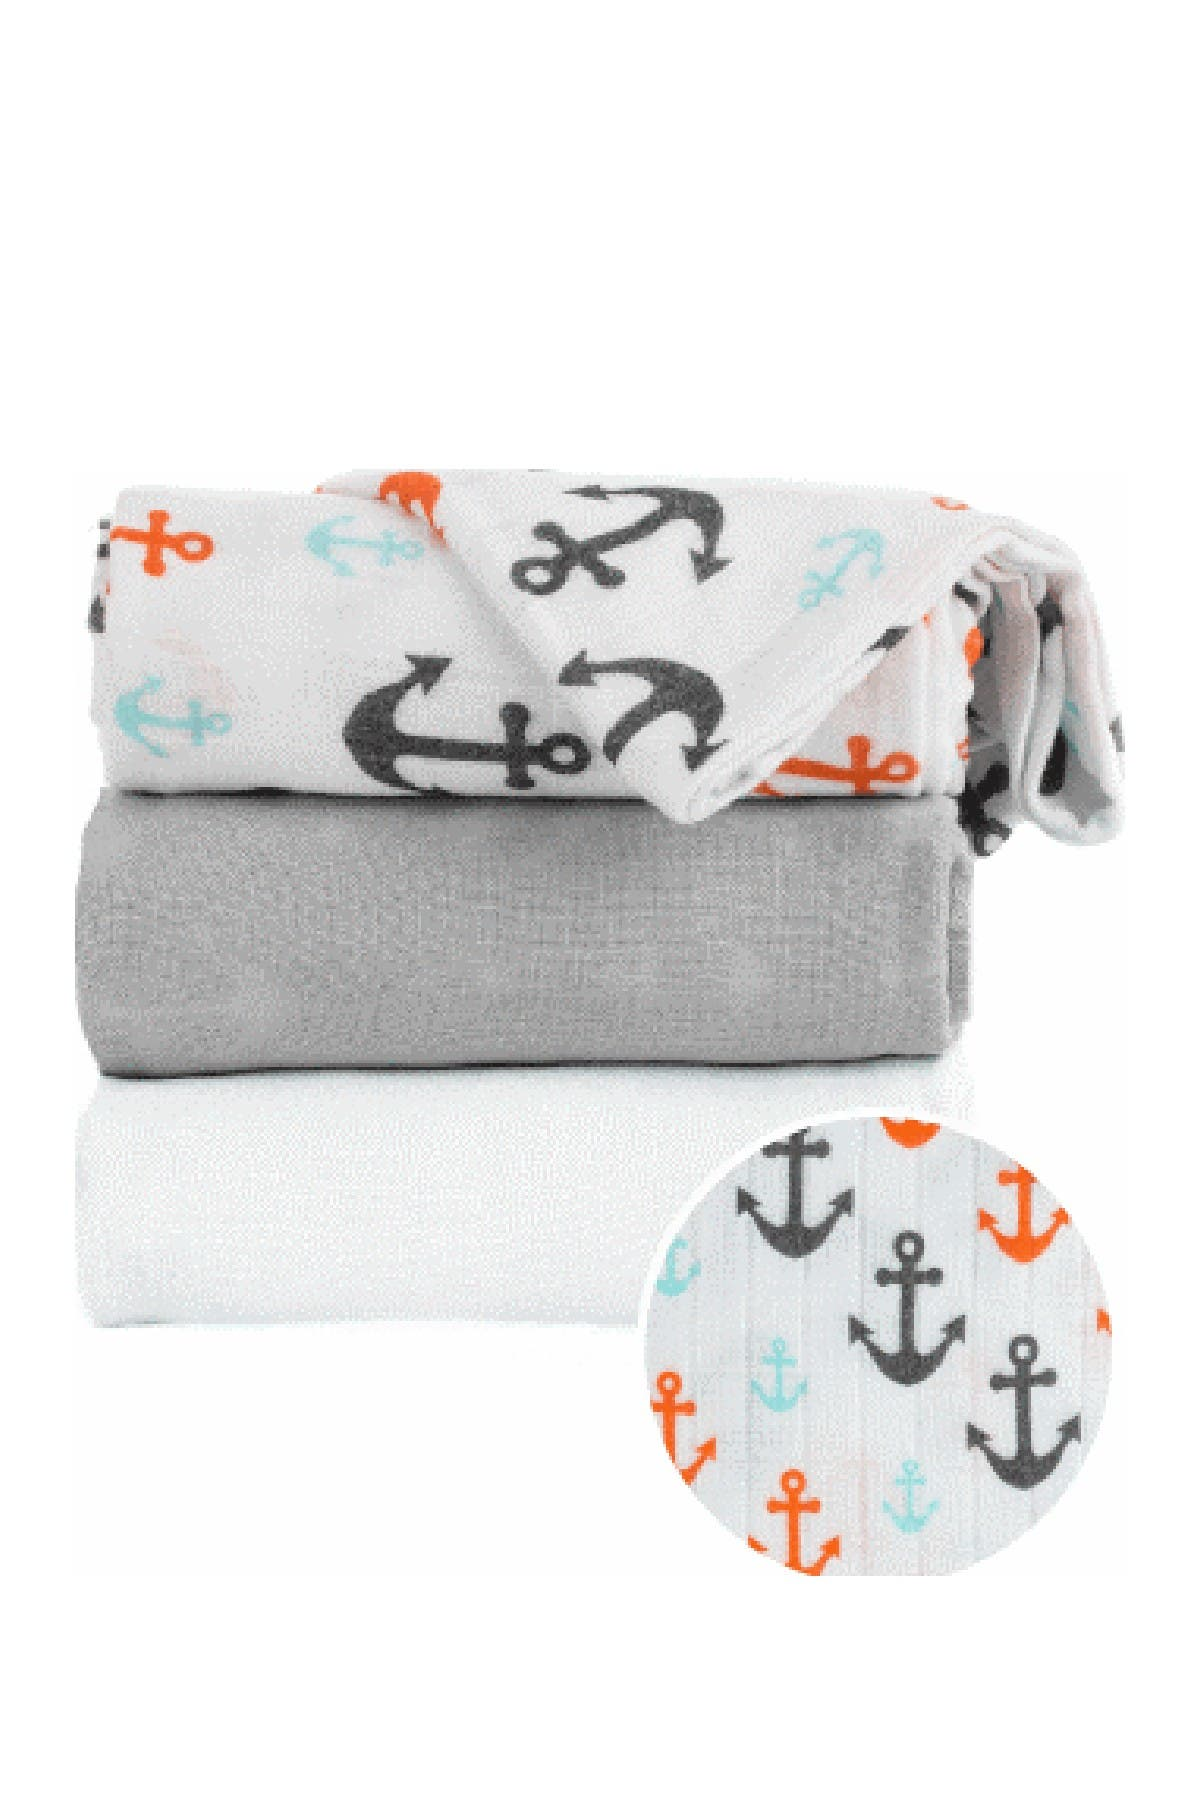 Image of Baby Tula Captain Blanket - Pack of 3